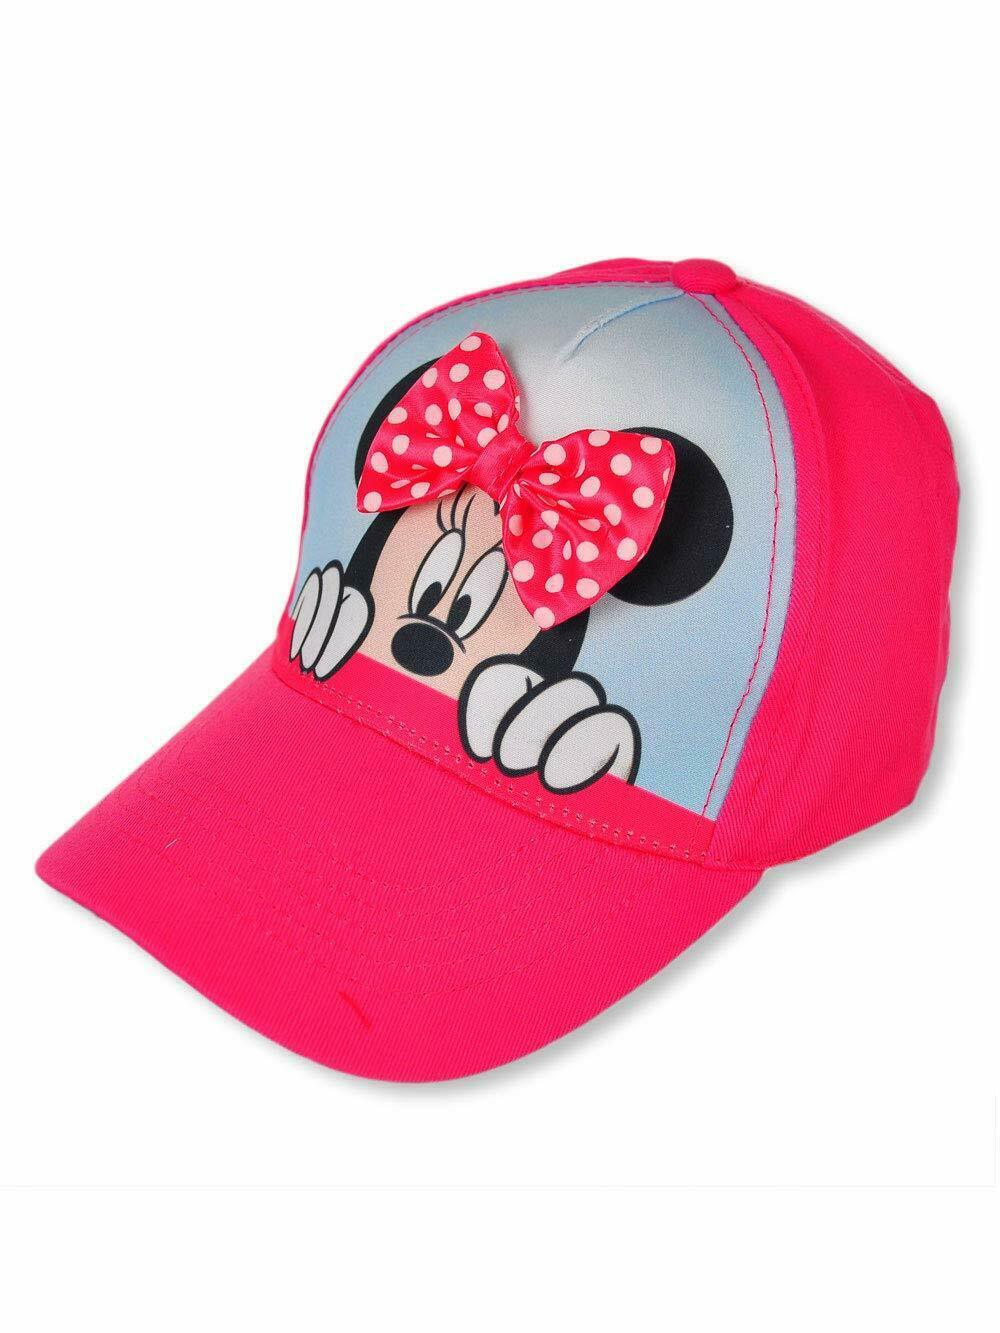 Disney Minnie Mouse Baseball Cap - Pink one Size - $12.22